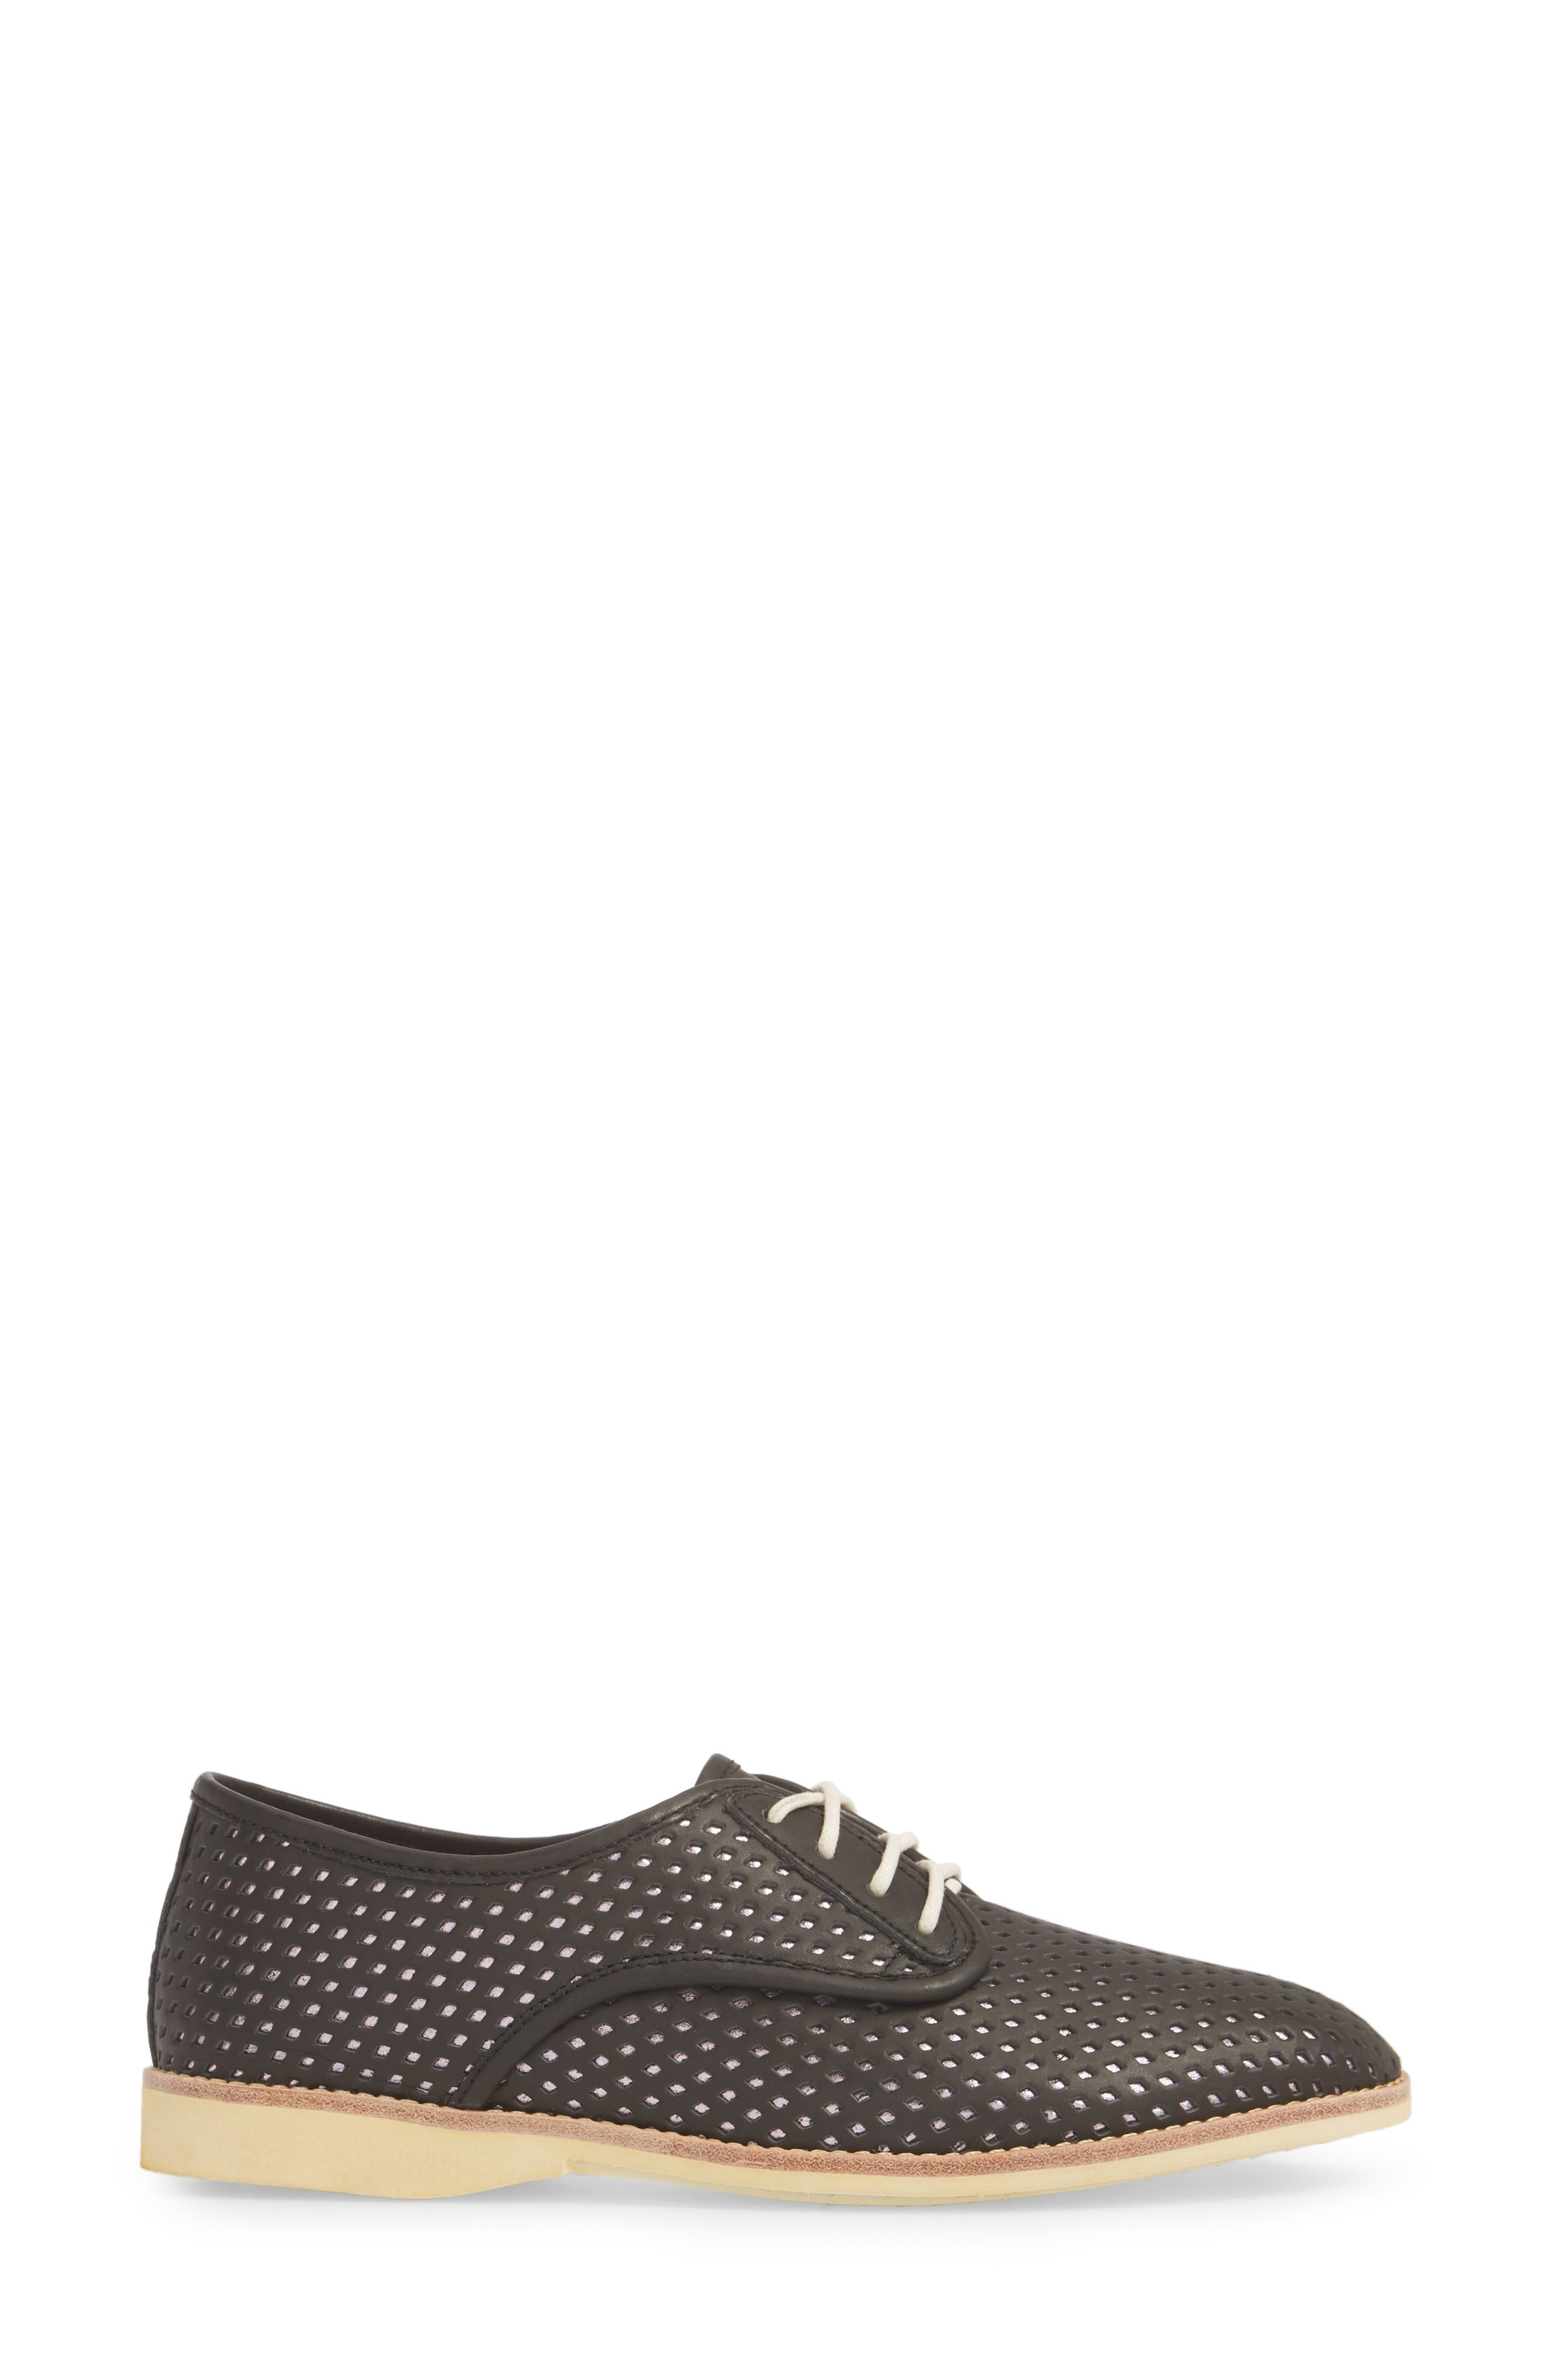 Punch Perforated Derby,                             Alternate thumbnail 3, color,                             BLACK/ ROSE GOLD LEATHER